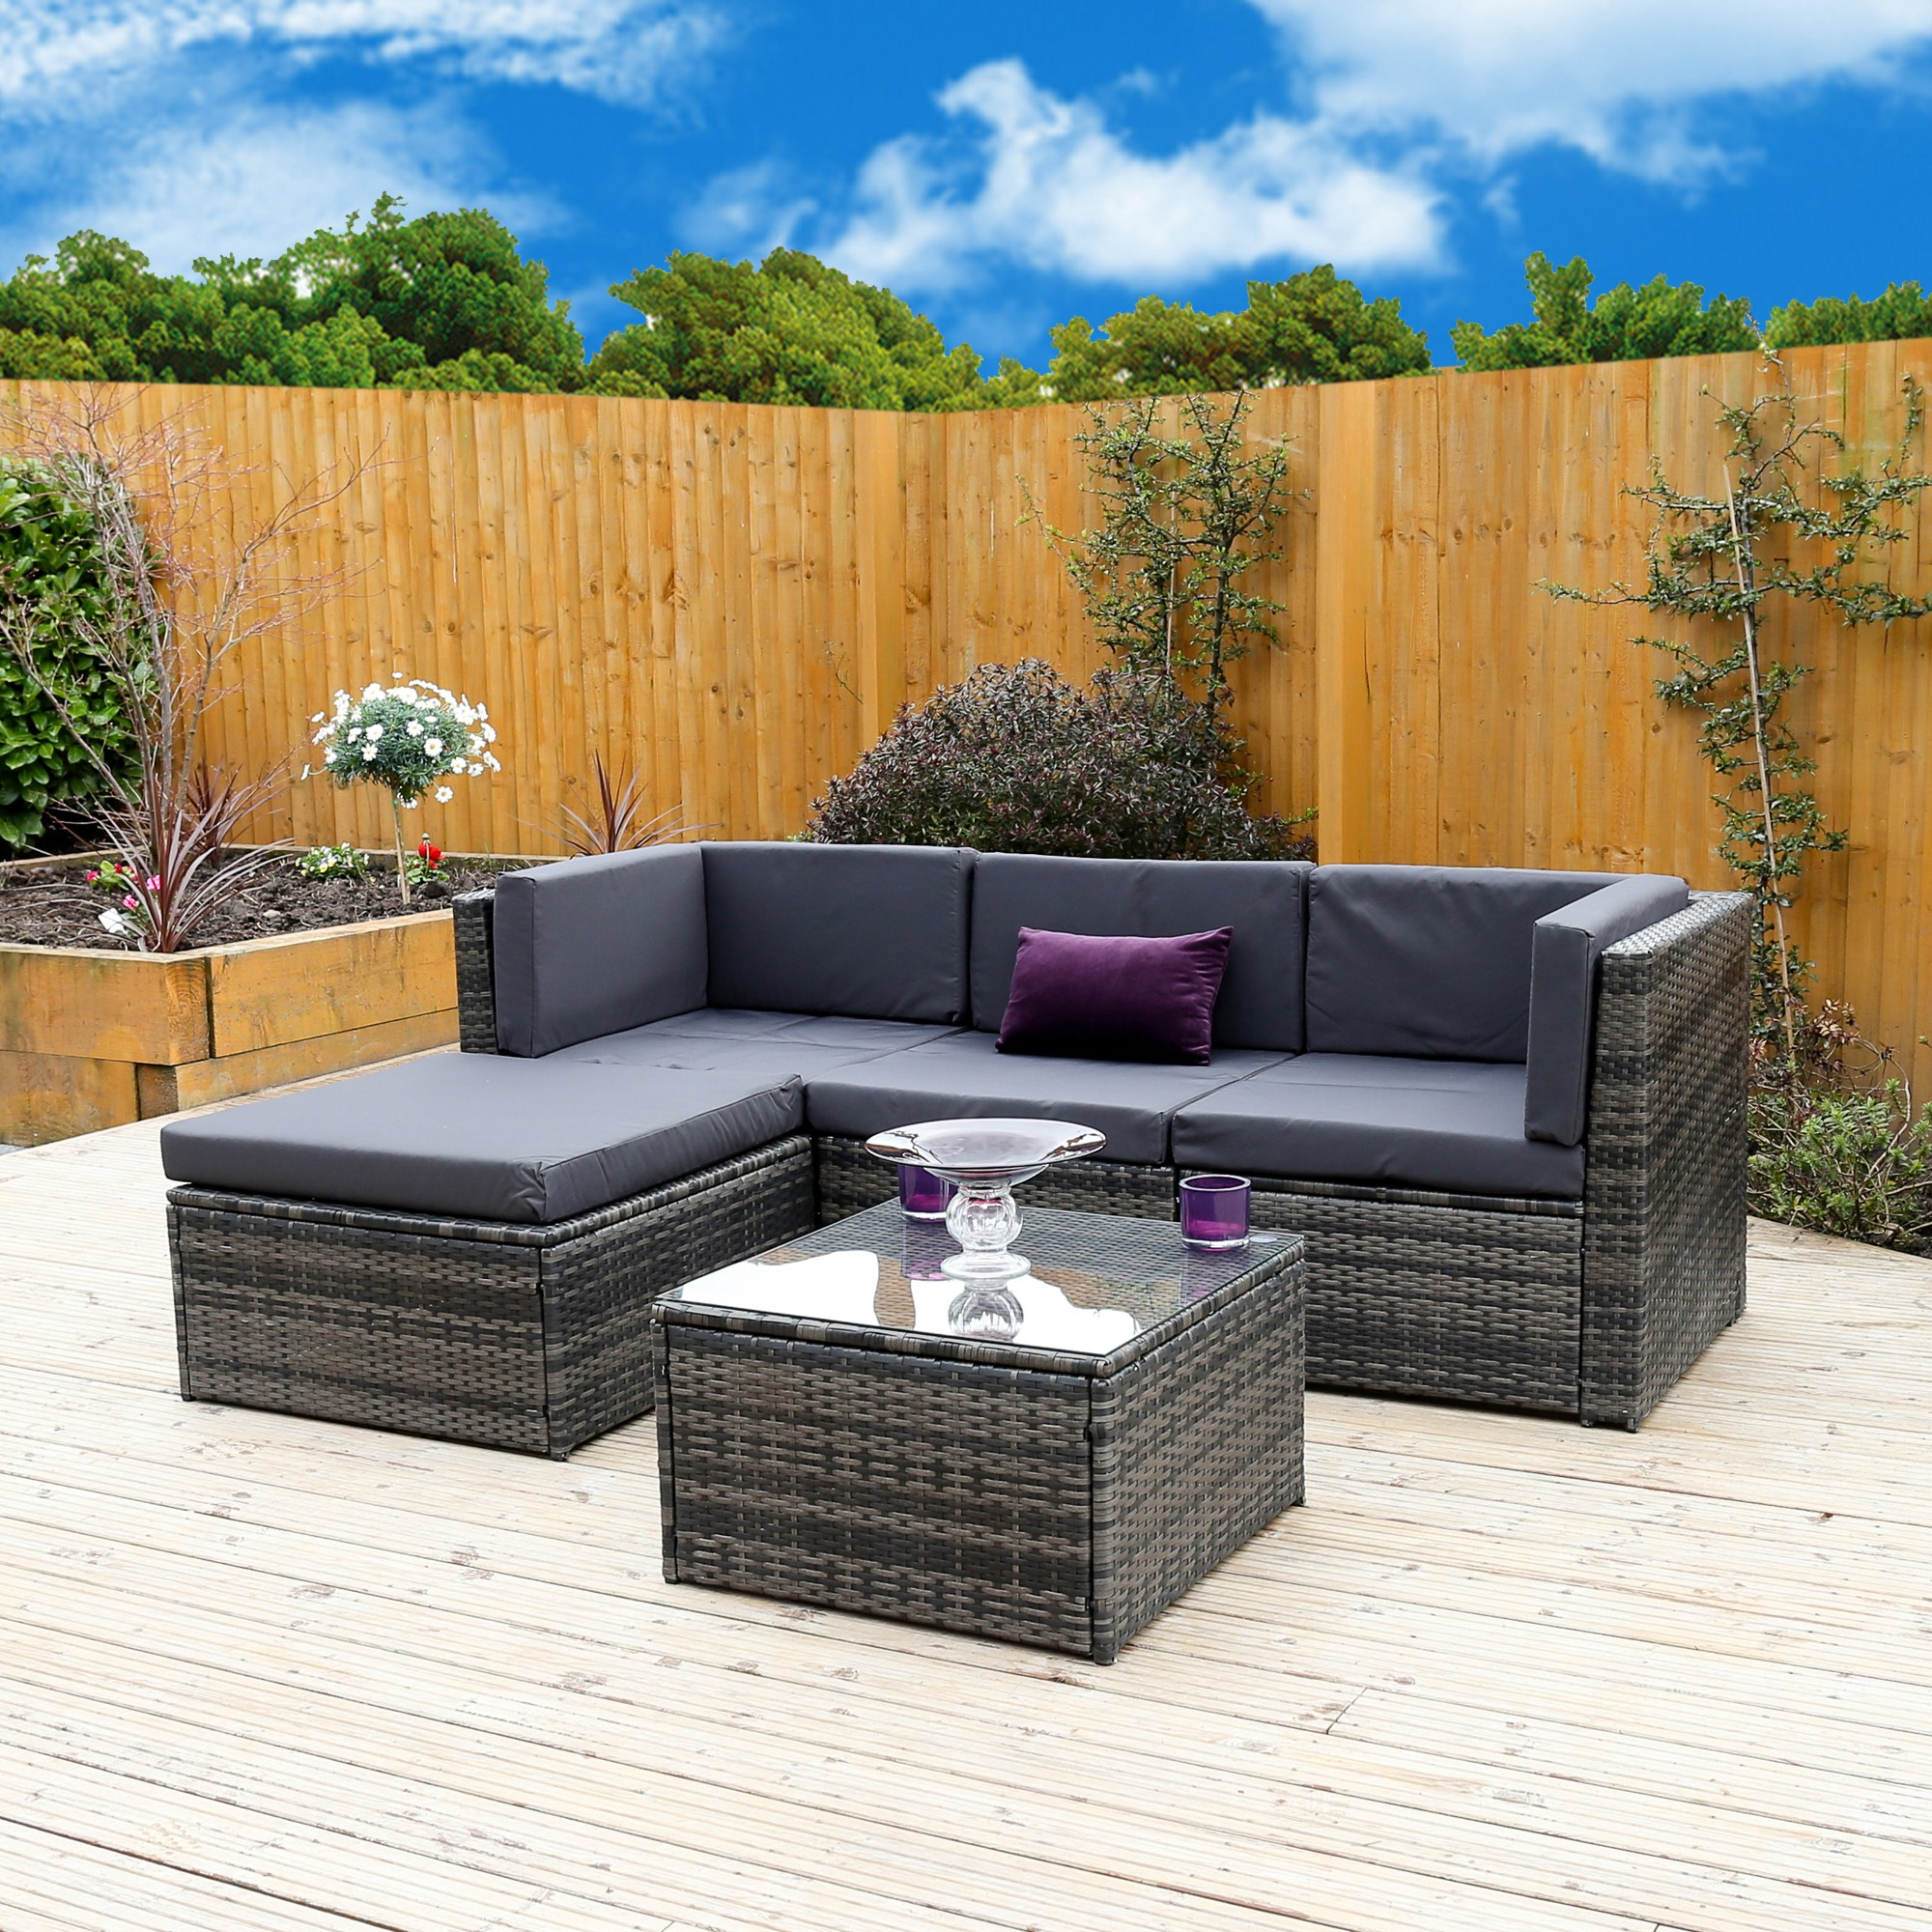 5 Piece Milano Modular Rattan Corner Sofa Set Now In Stock Abreo Home Furniture